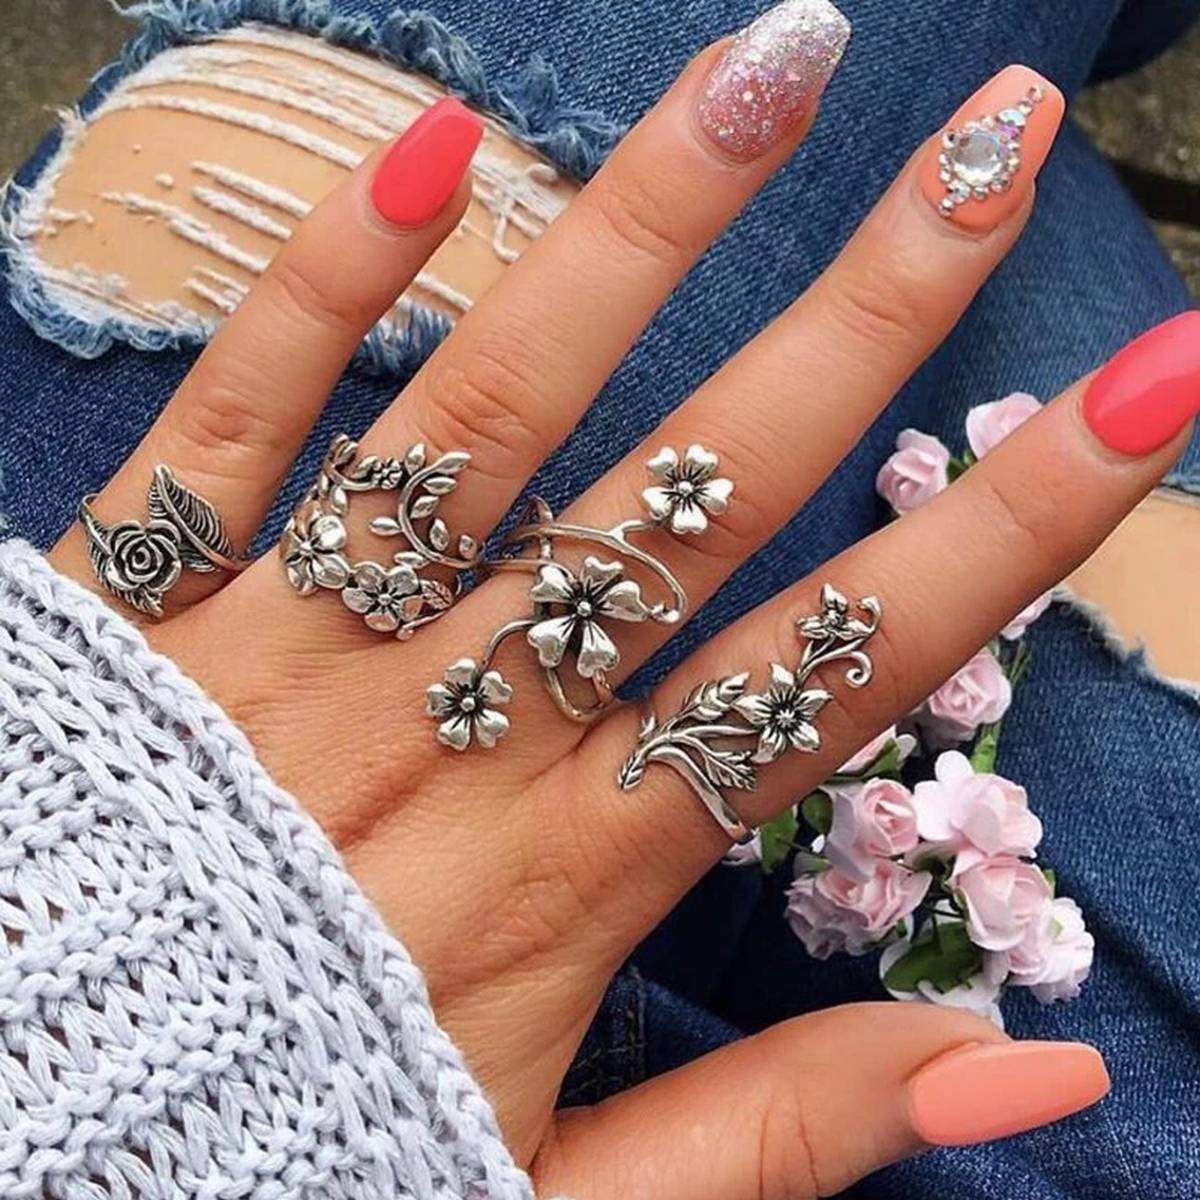 Pack of 4 Rings For Girls - Pack of Antique Silver Color Ring Set For Girls- Vintage Bohemia Ring Set For Women - Rose Flower Rings for Women - Charm Bohemia Floral Ring Set - Imported Rings Fashion Jewellery Trendy